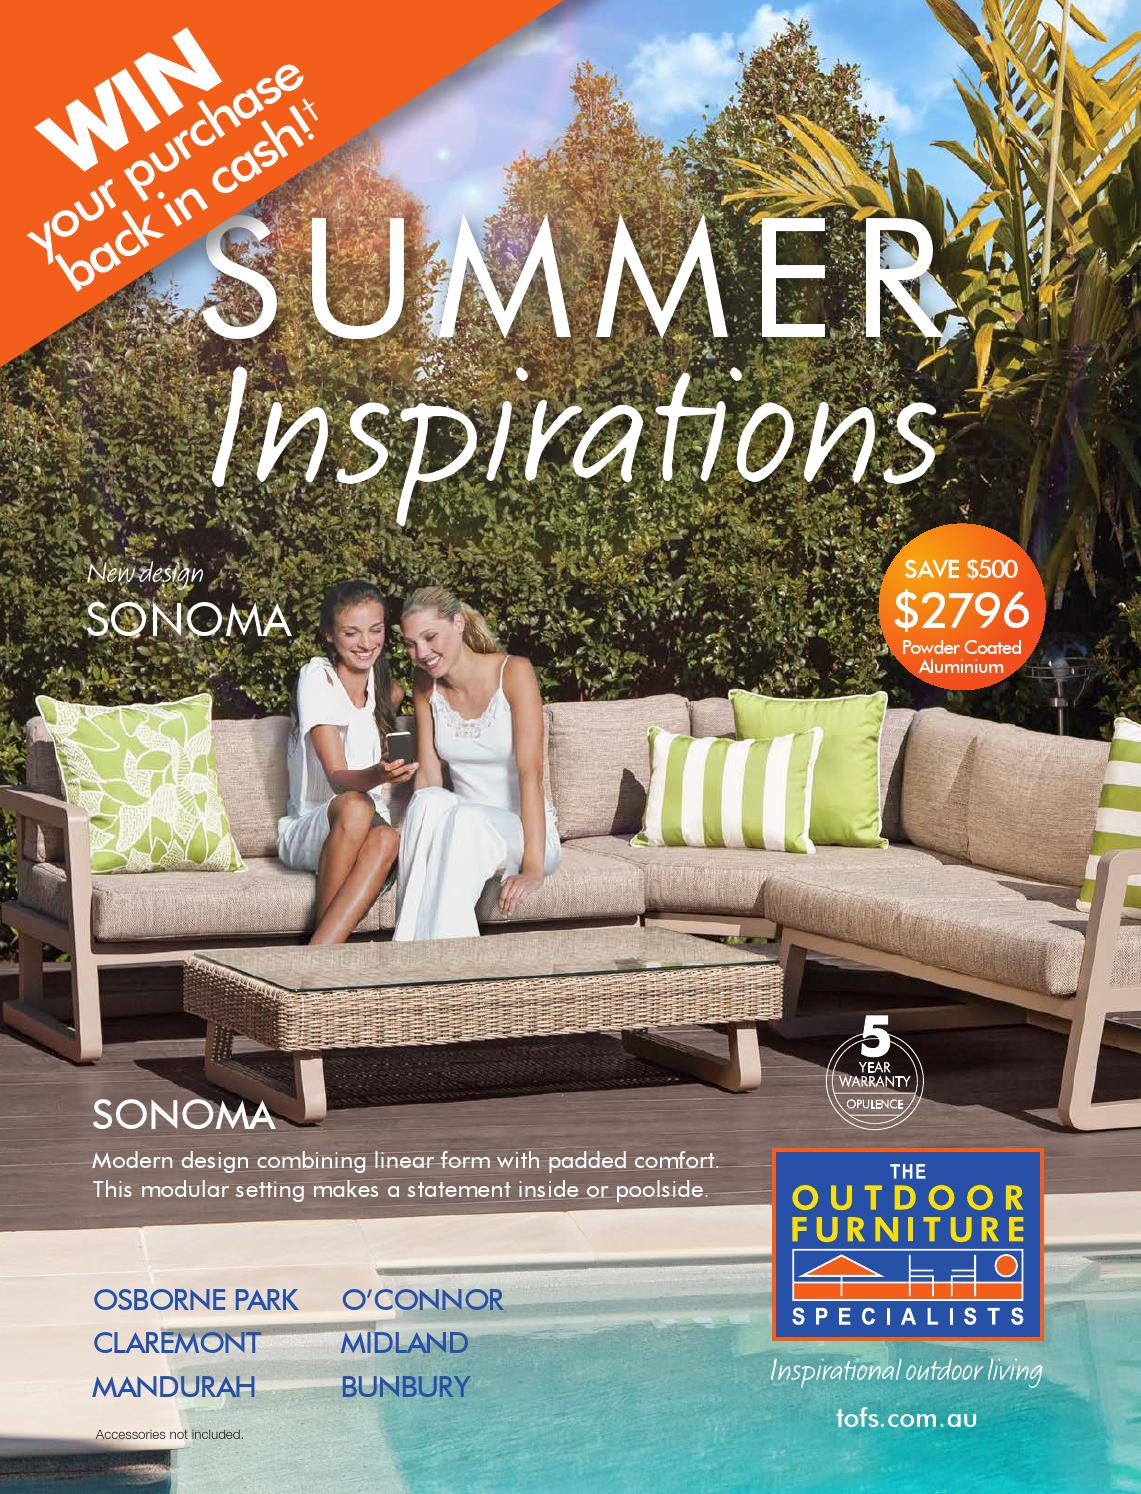 The Outdoor Furniture Specialists Wa Summer Inspirations